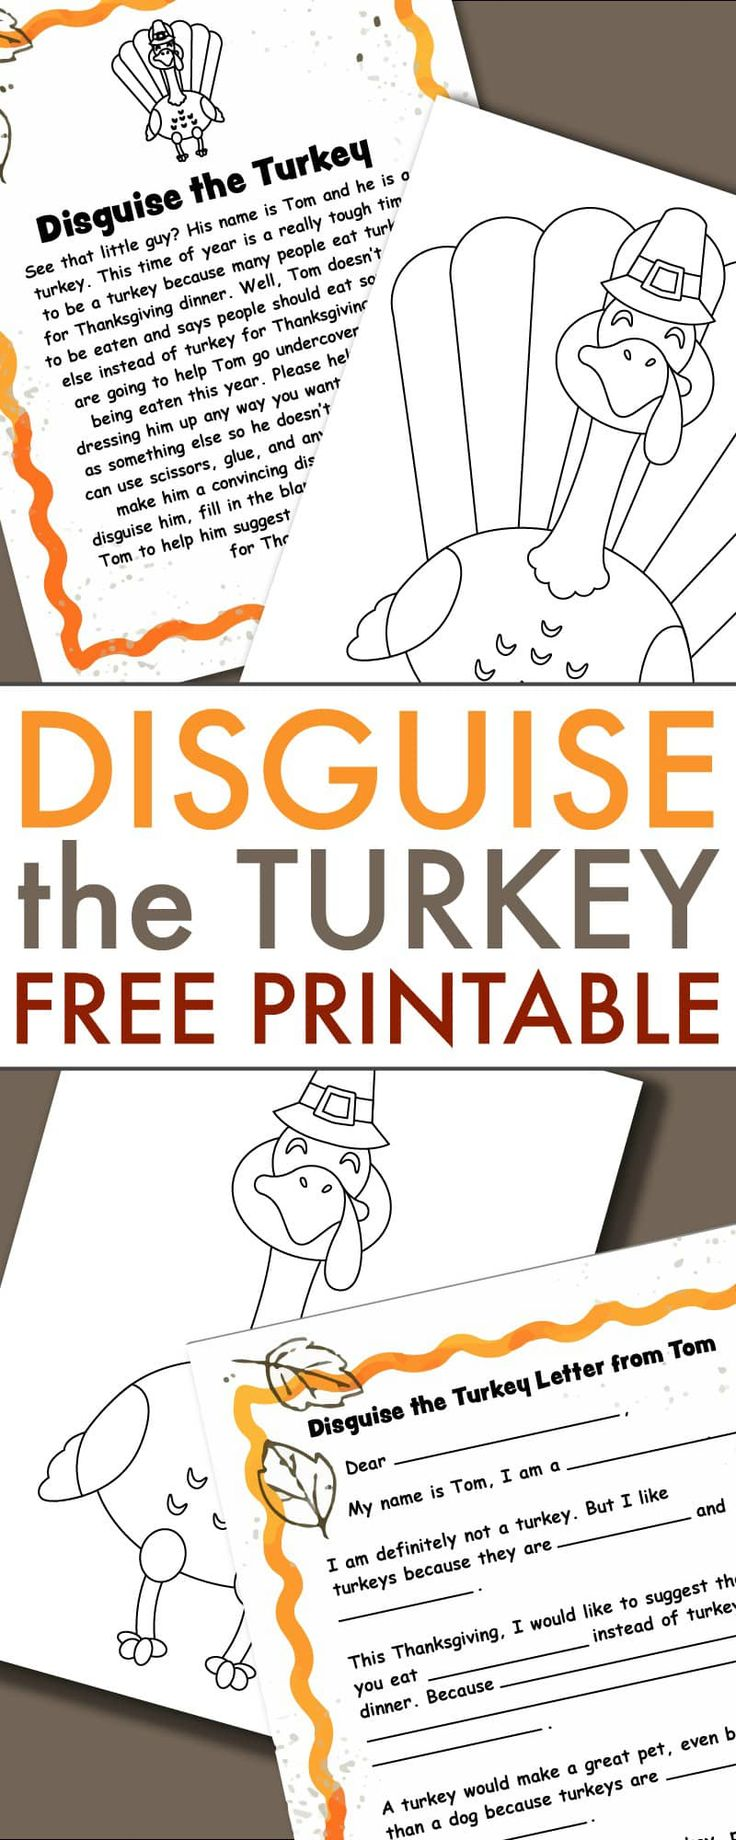 Turkey in Disguise Project free printable Thanksgiving template for home and classroom